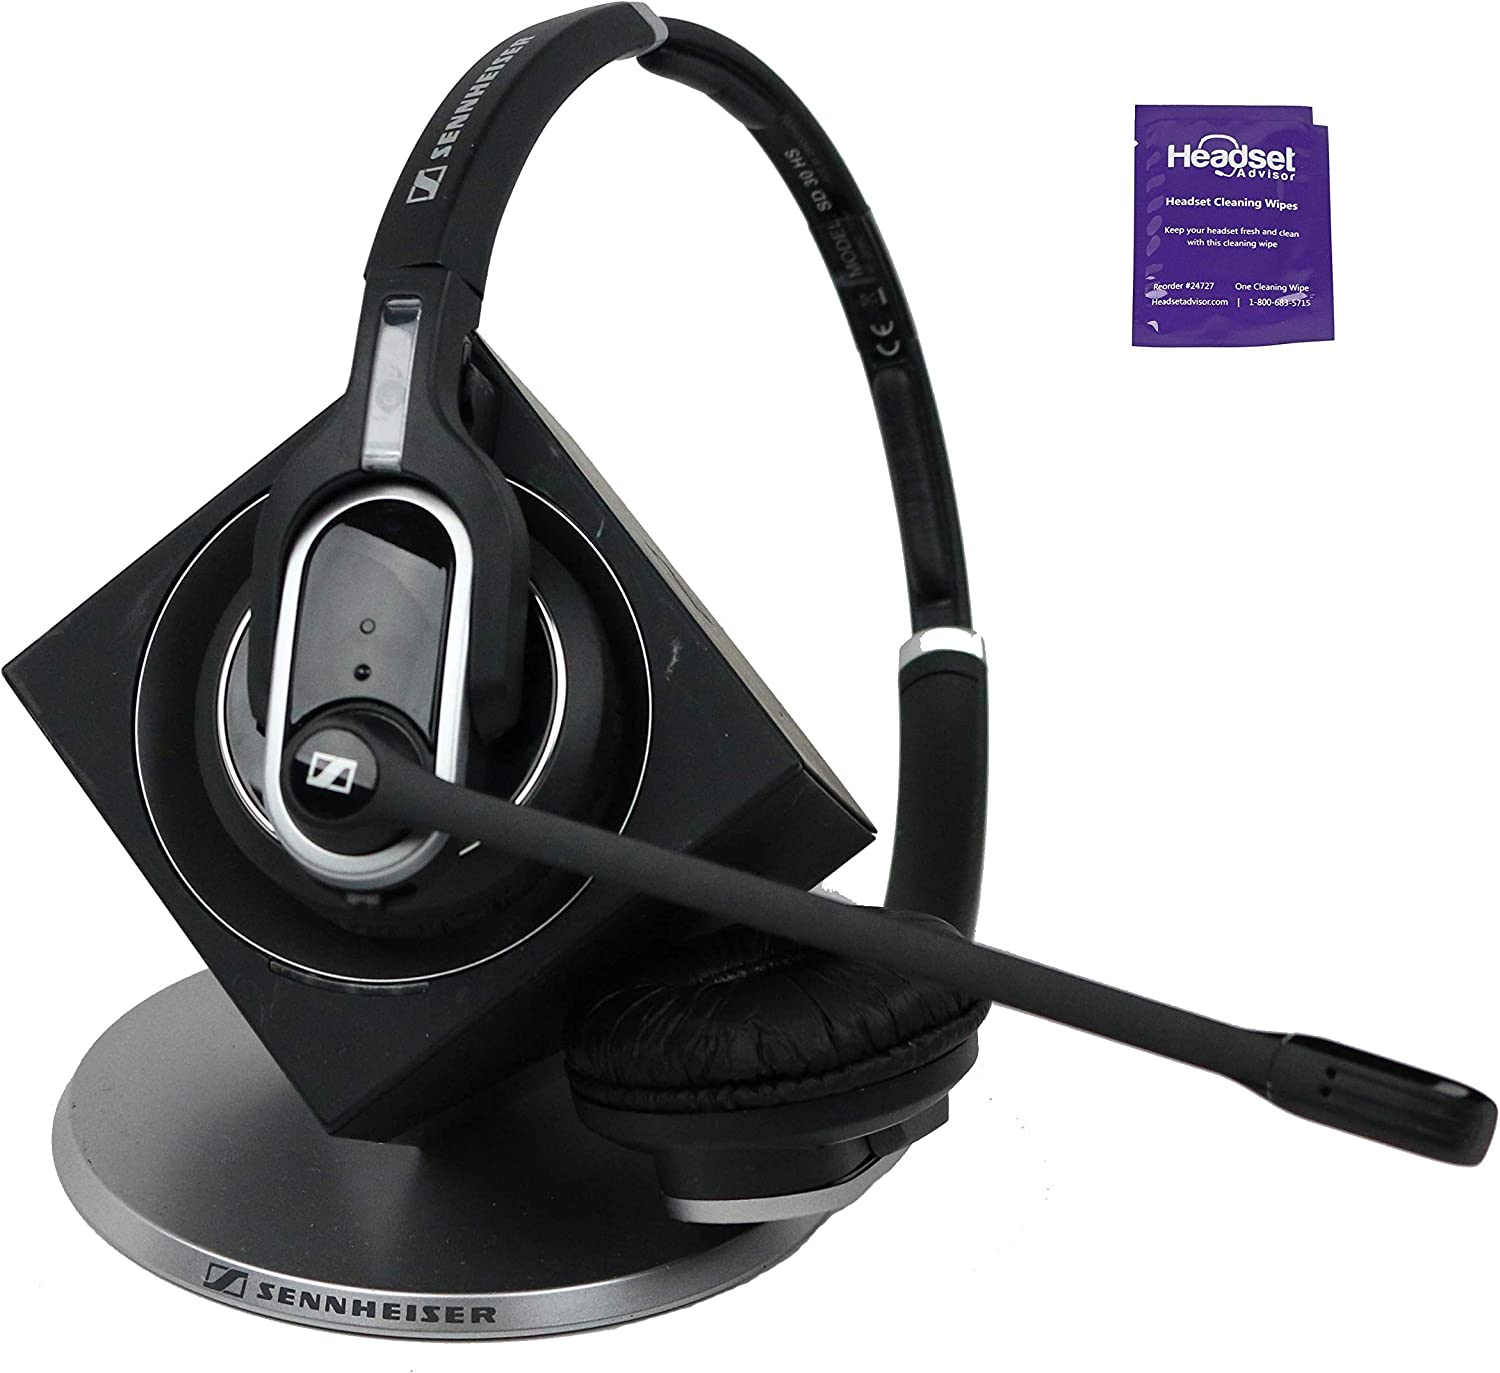 Sennheiser DW Pro 2 Wireless Headset Included with Free Headset Advisor Wipe (Renewed)